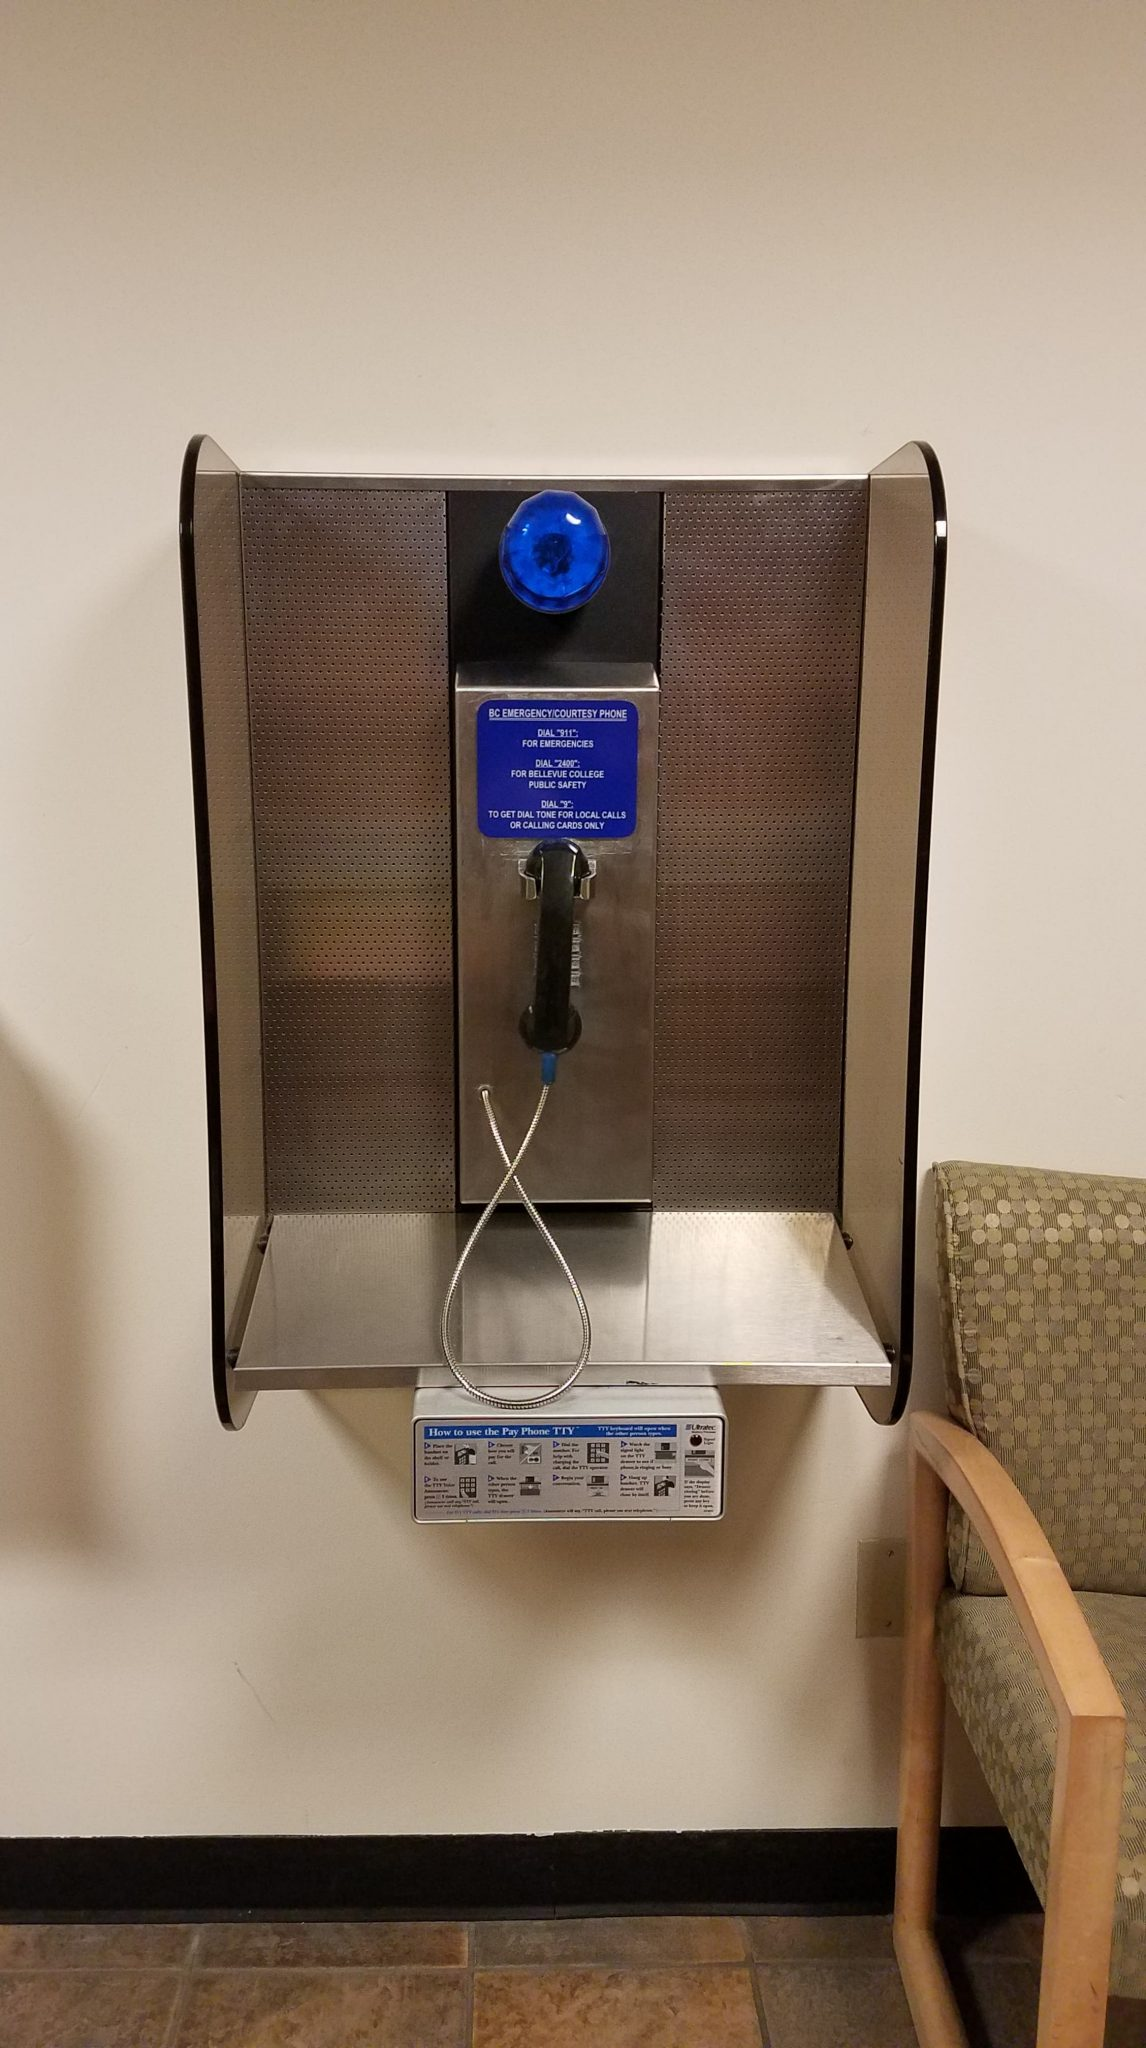 Public Safety Emergency Call box Silver with Blue light